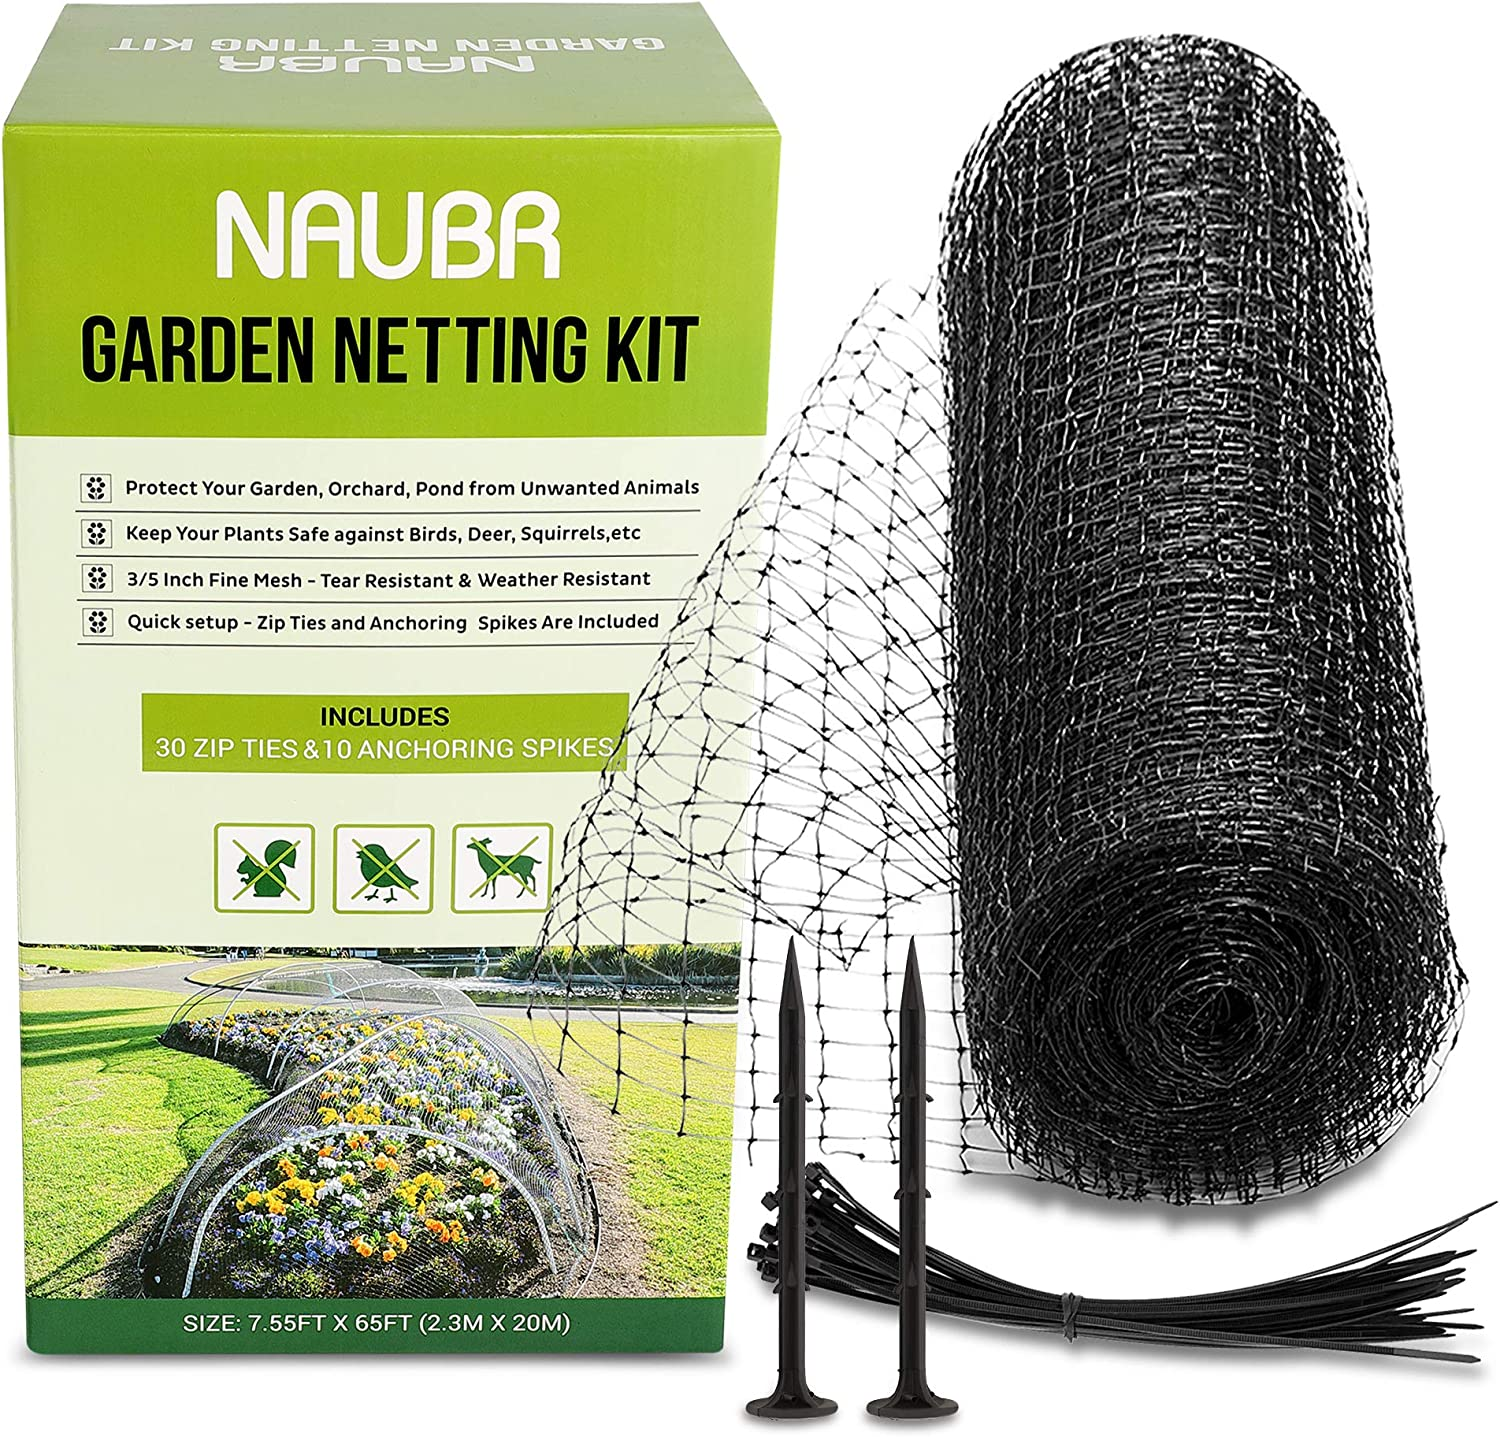 "Naubr Garden Netting Kit 7.55 x 65ft Bird Netting 3/5"" Mesh Heavy Duty Net for Garden, Farm, Orchard, Lasting Protection Against Birds, Deer and Other Pests,Zip Ties & Anchoring Spikes Included"